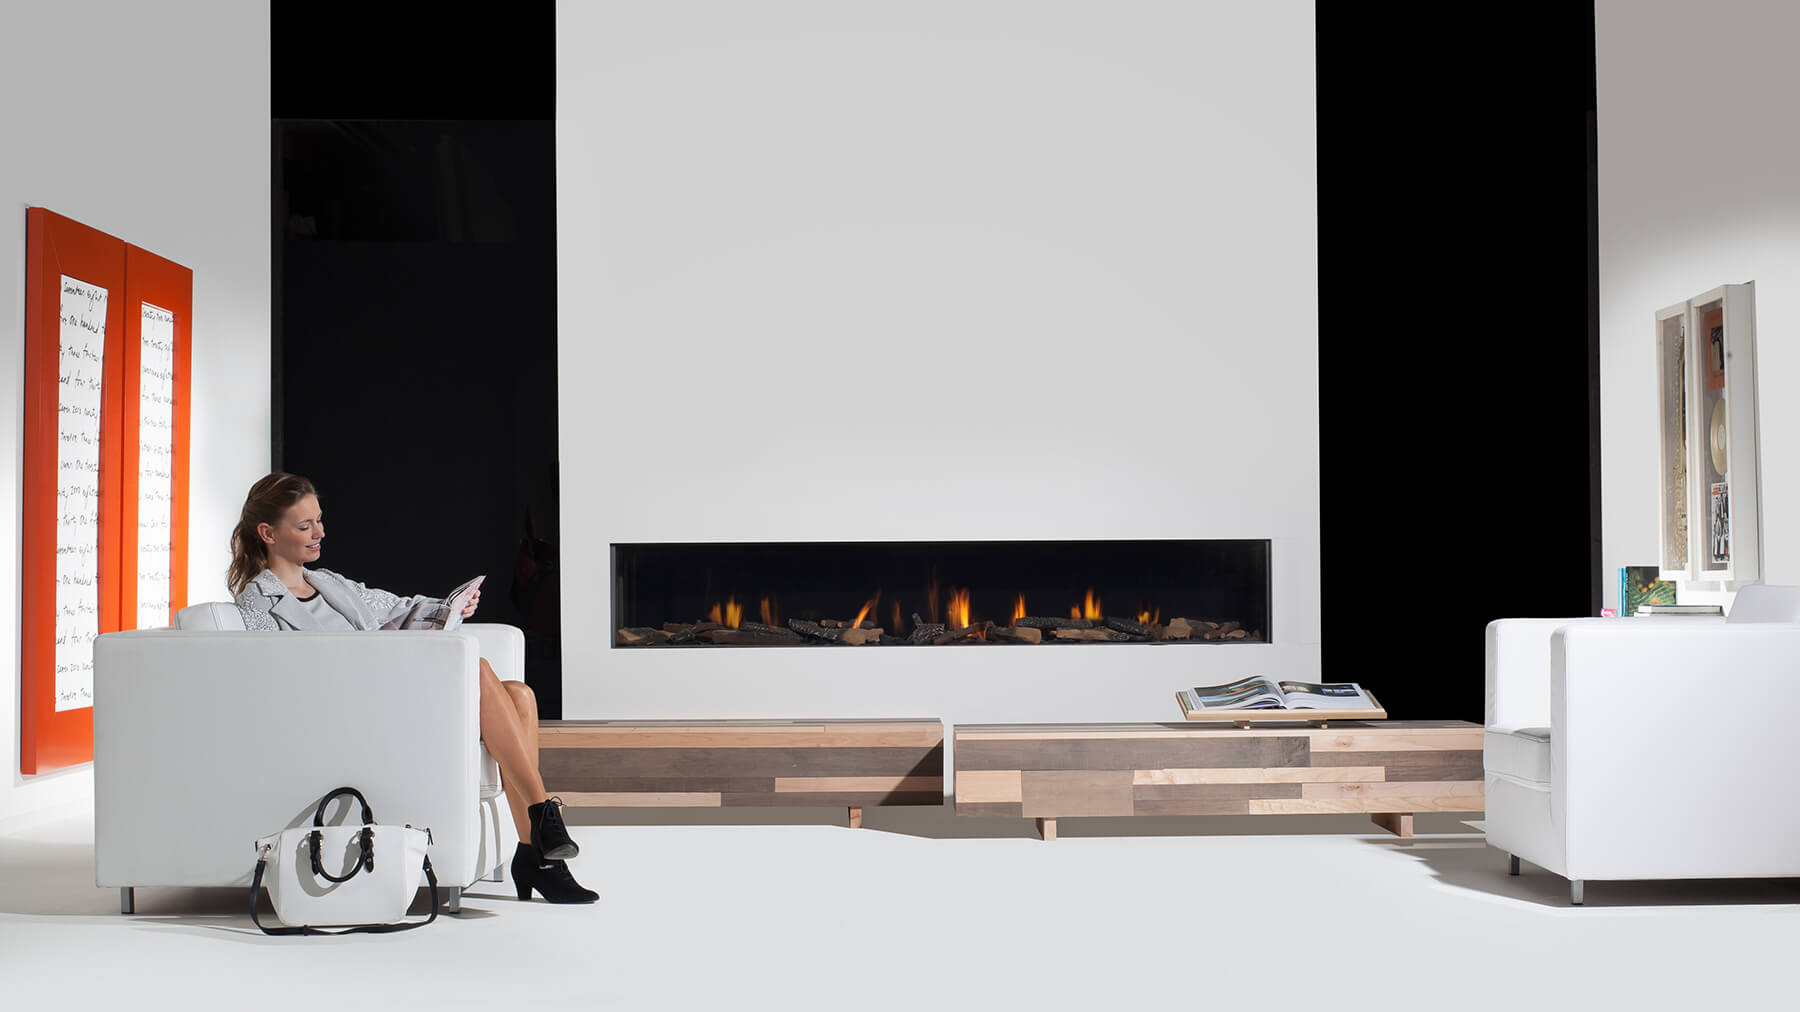 Should You Get Ethanol Contemporary Fireplaces for Your Home?